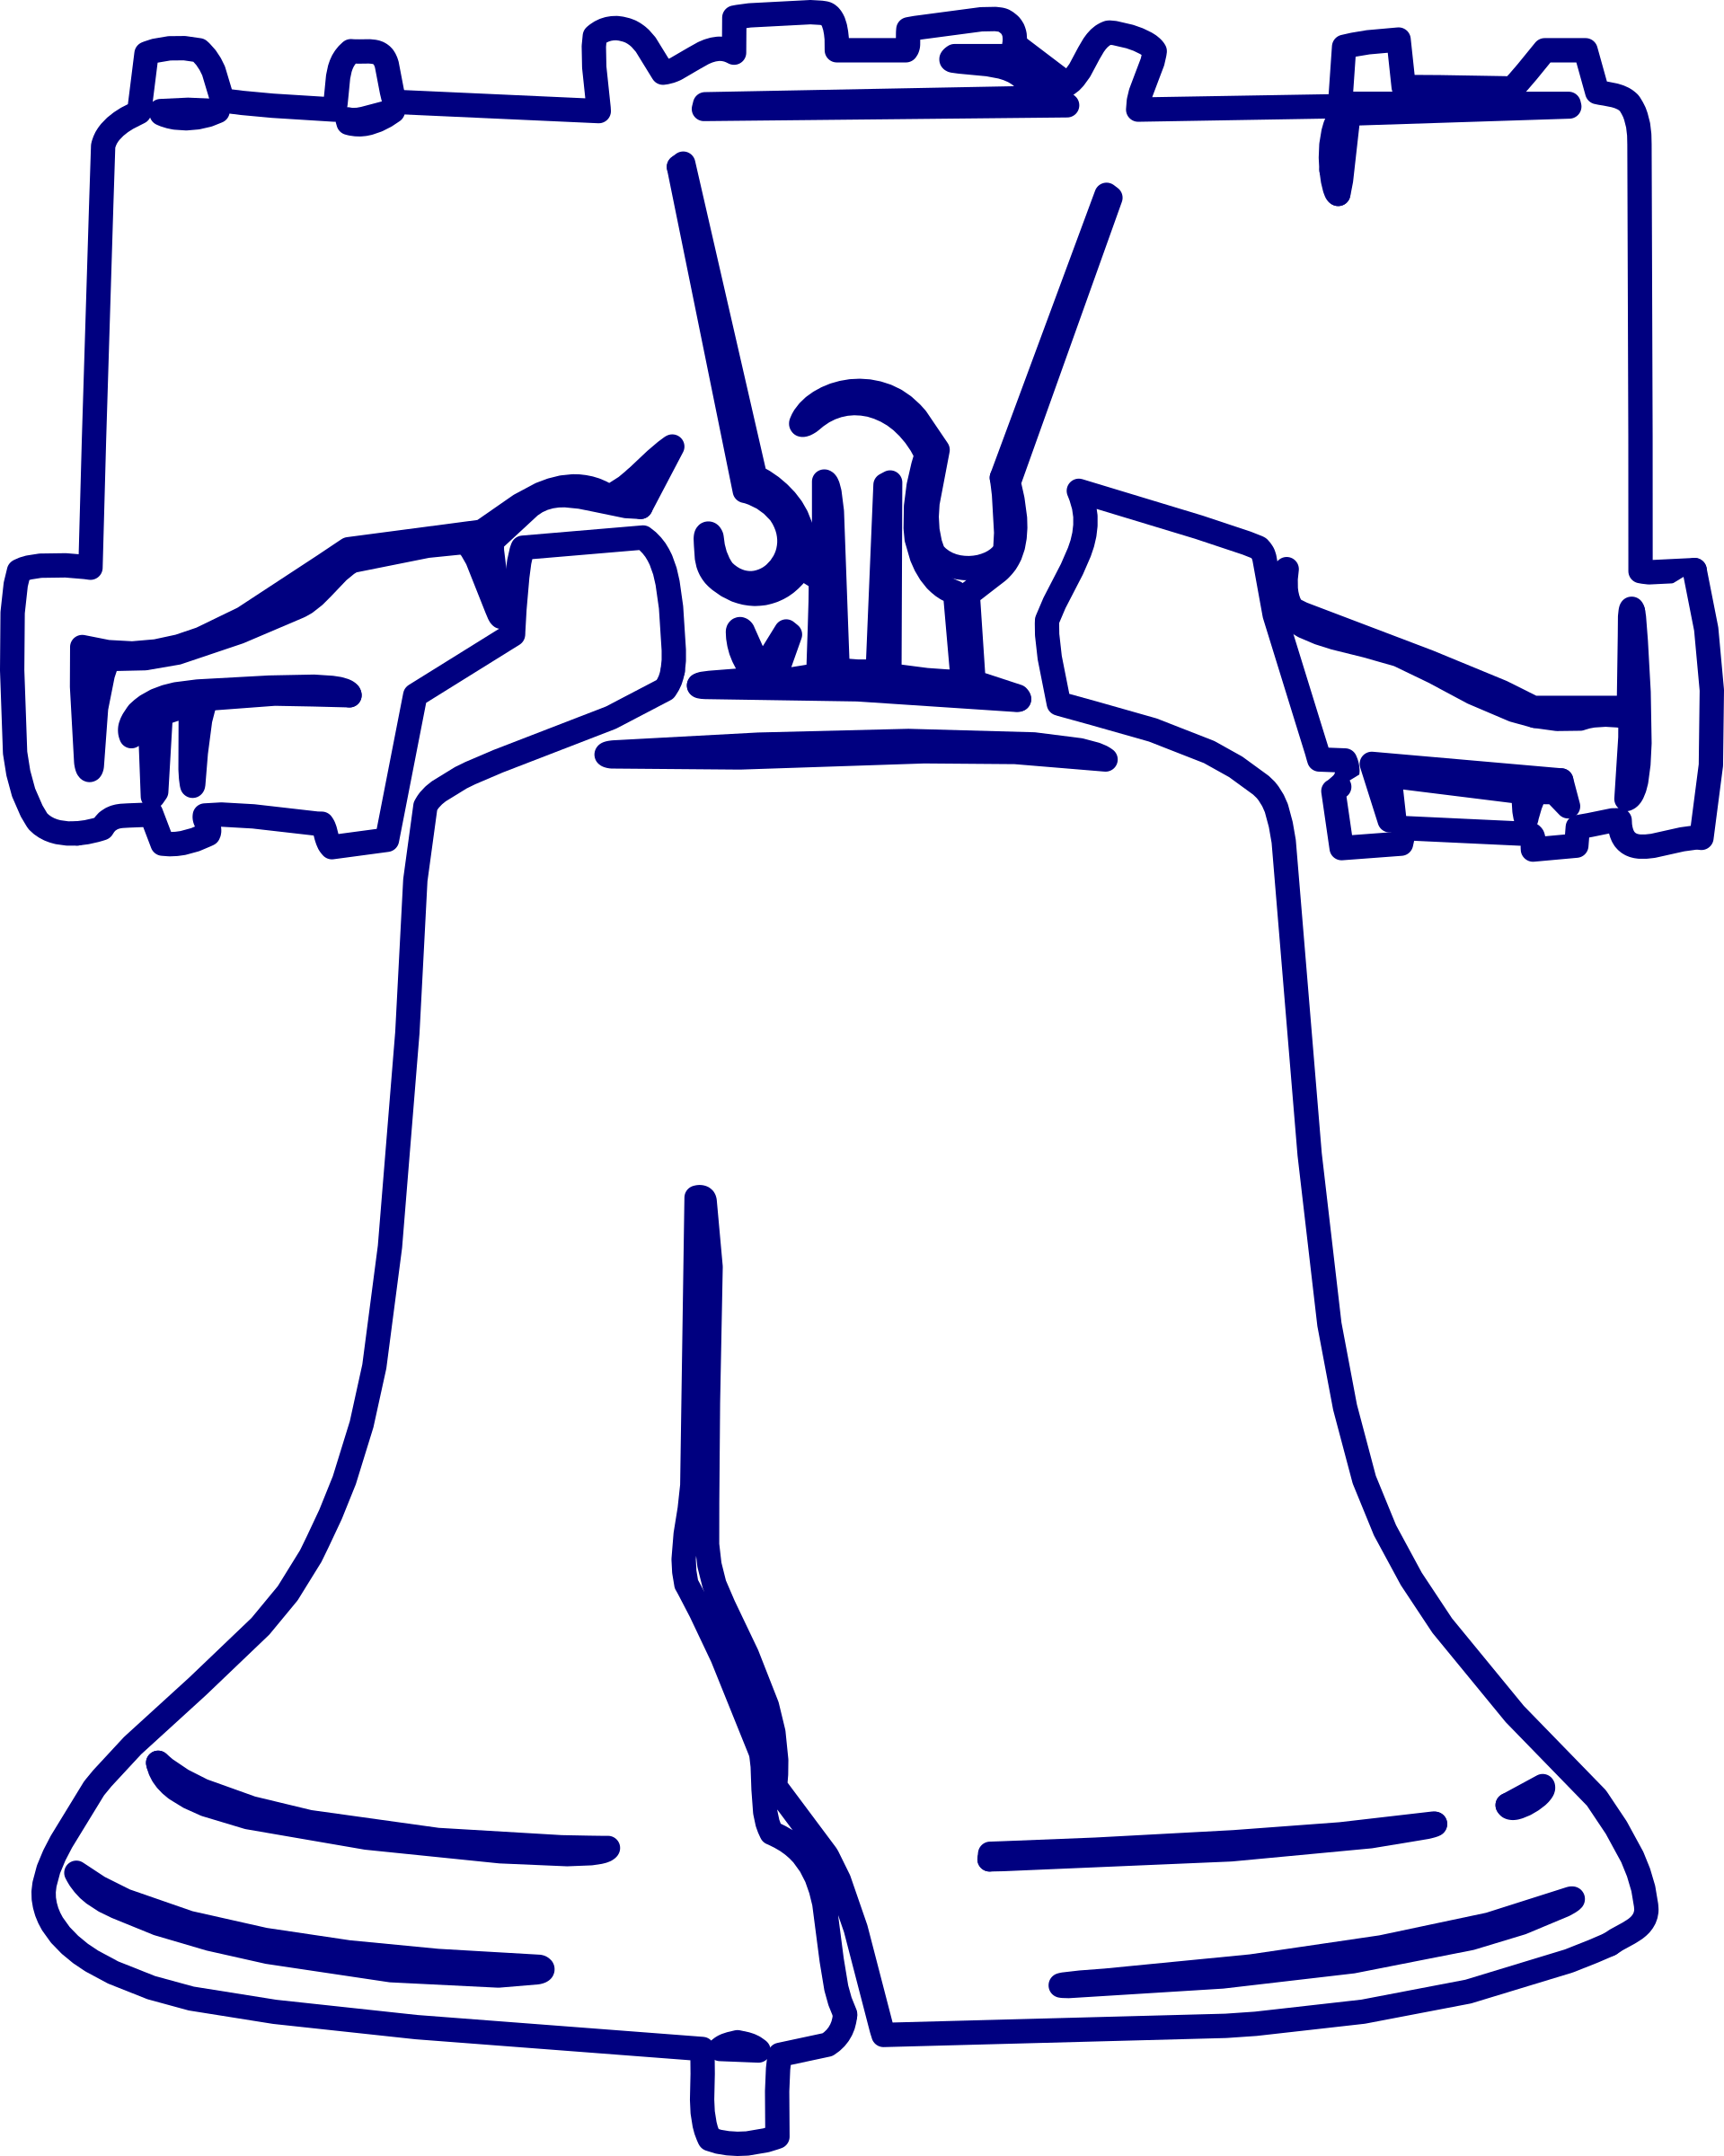 Liberty bell clip art png. Icons free and downloads